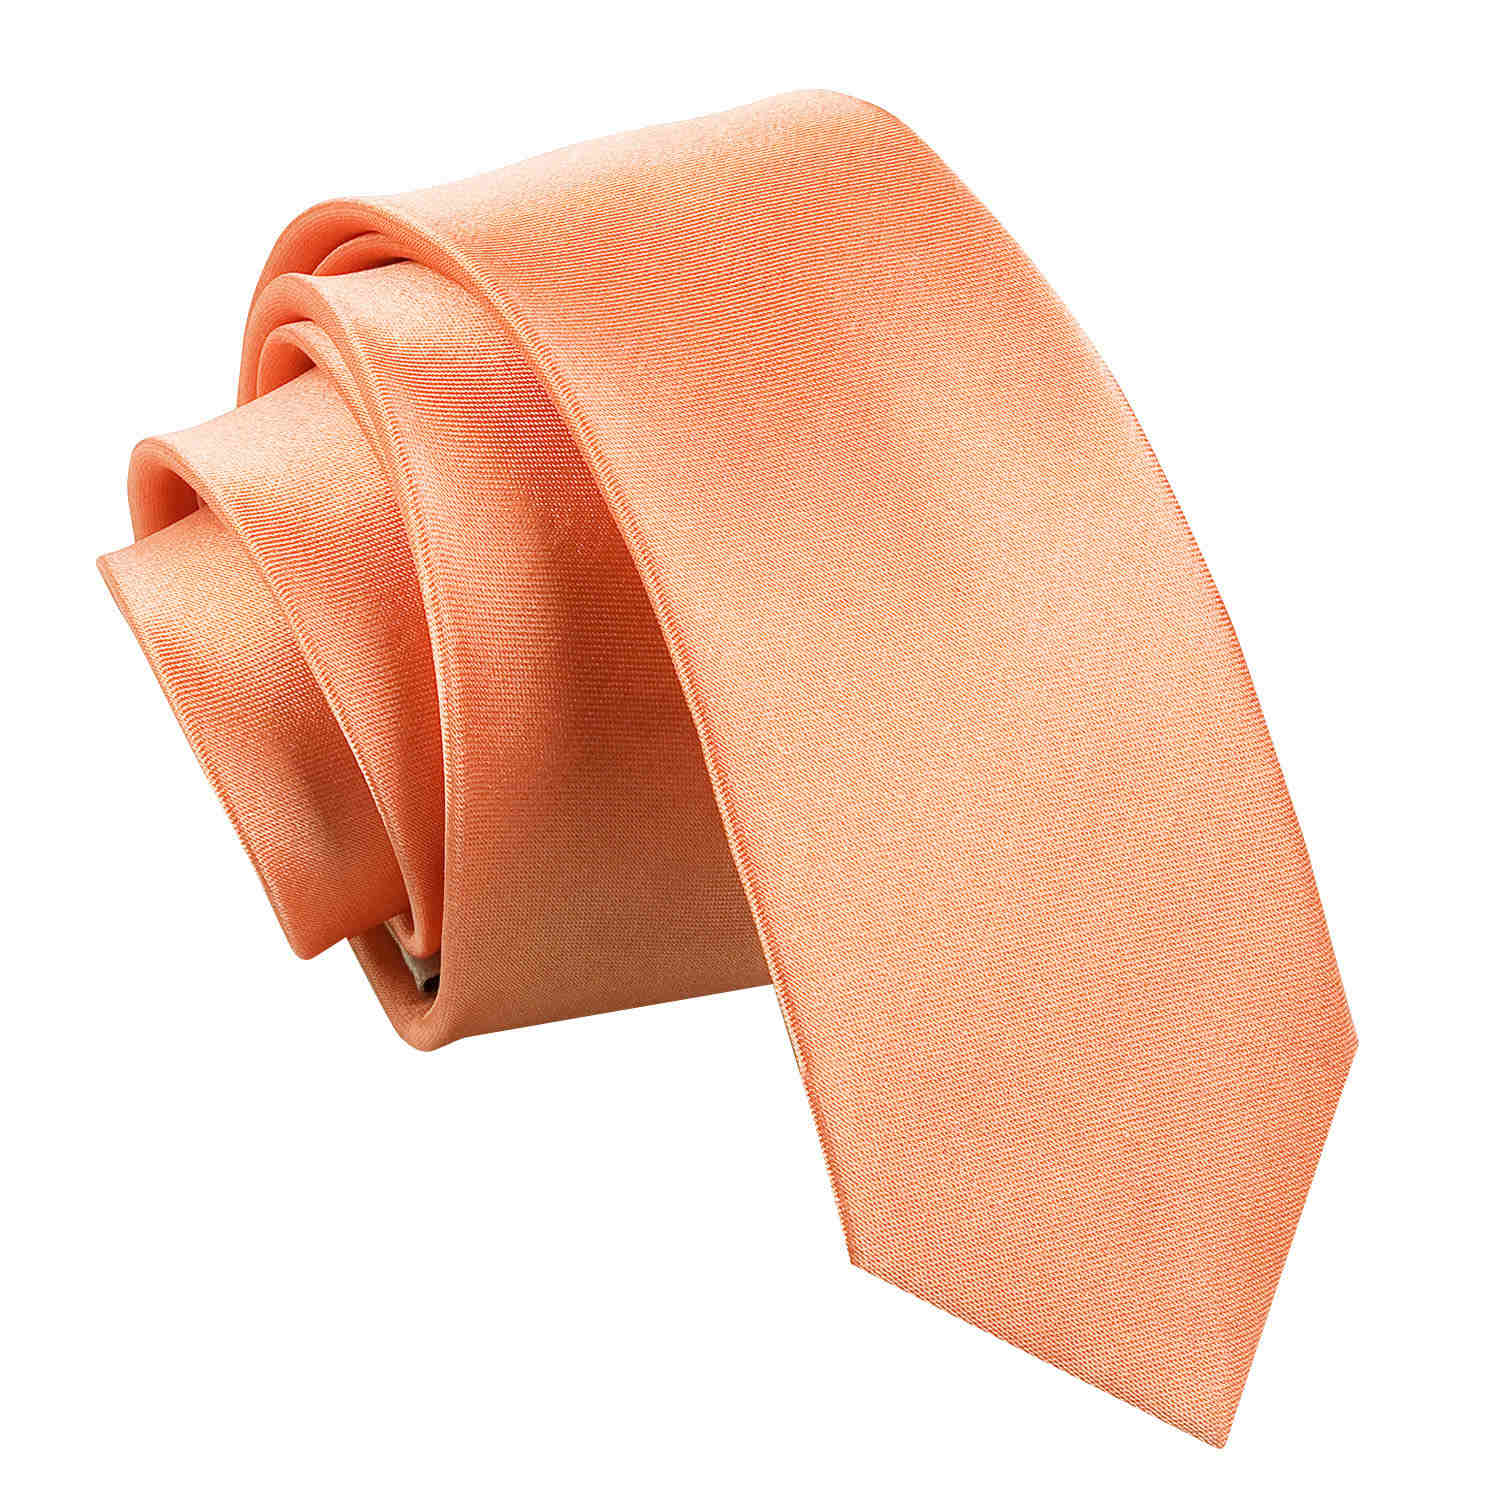 At hamlergoodchain.ga, we specialize in ties and accessories for men, women and children at affordable prices. Although prices are kept low (we're talking ties from $ each), we don't skimp on quality and stand behind our products.